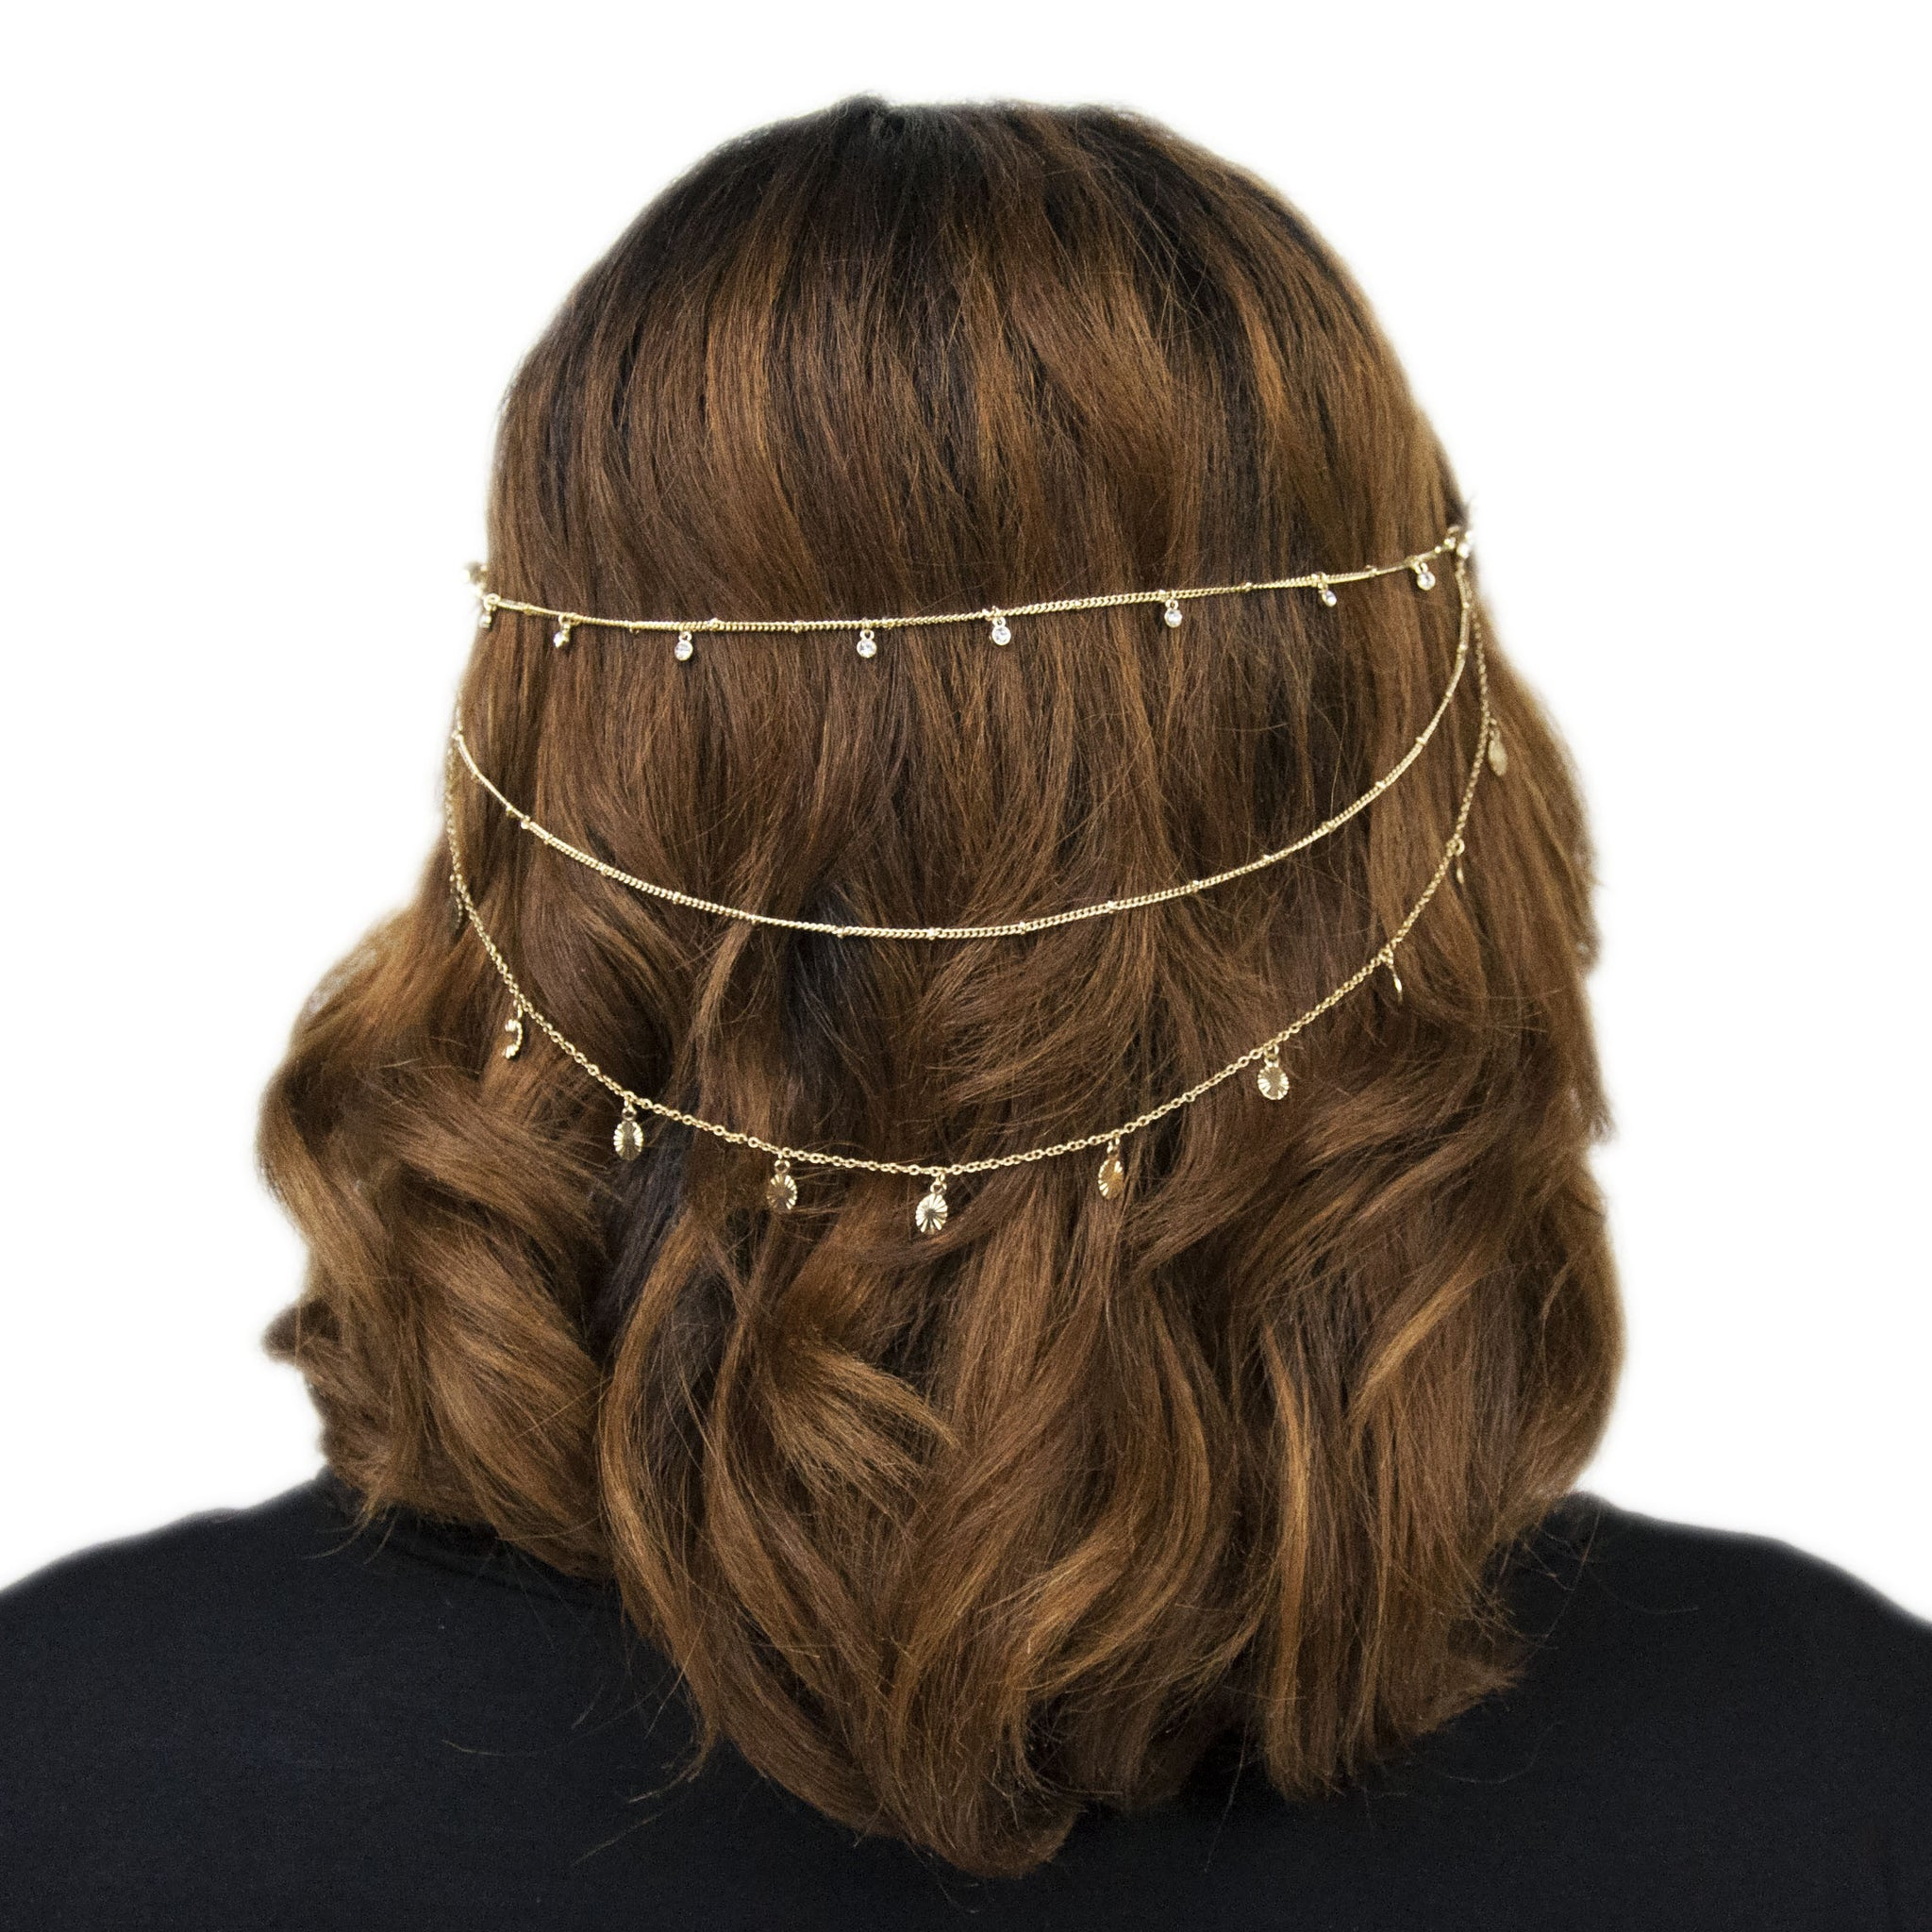 Royal Hair Chain